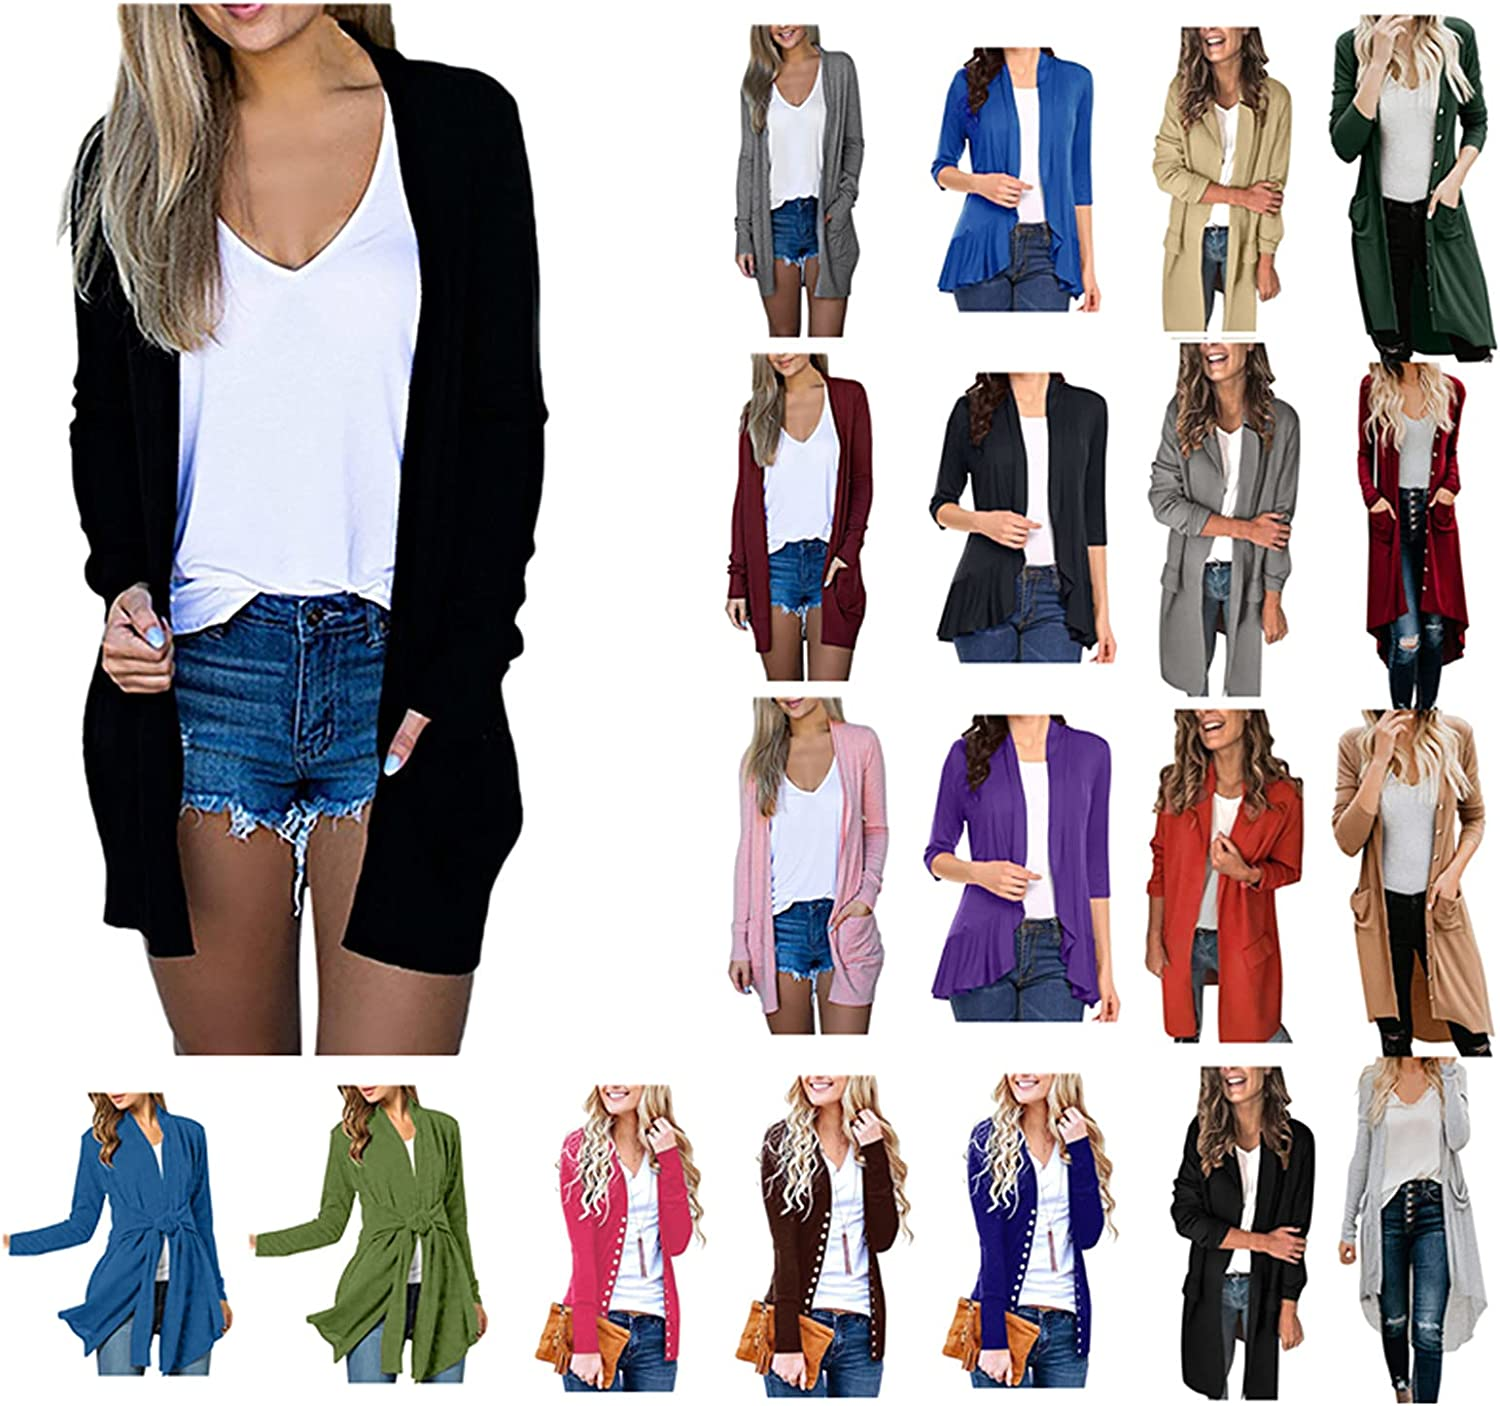 Fashion Cardigan for Women Solid Color Casual Decorative Pocket Long Sleeve Outwear Open Front Fly Away Sweater